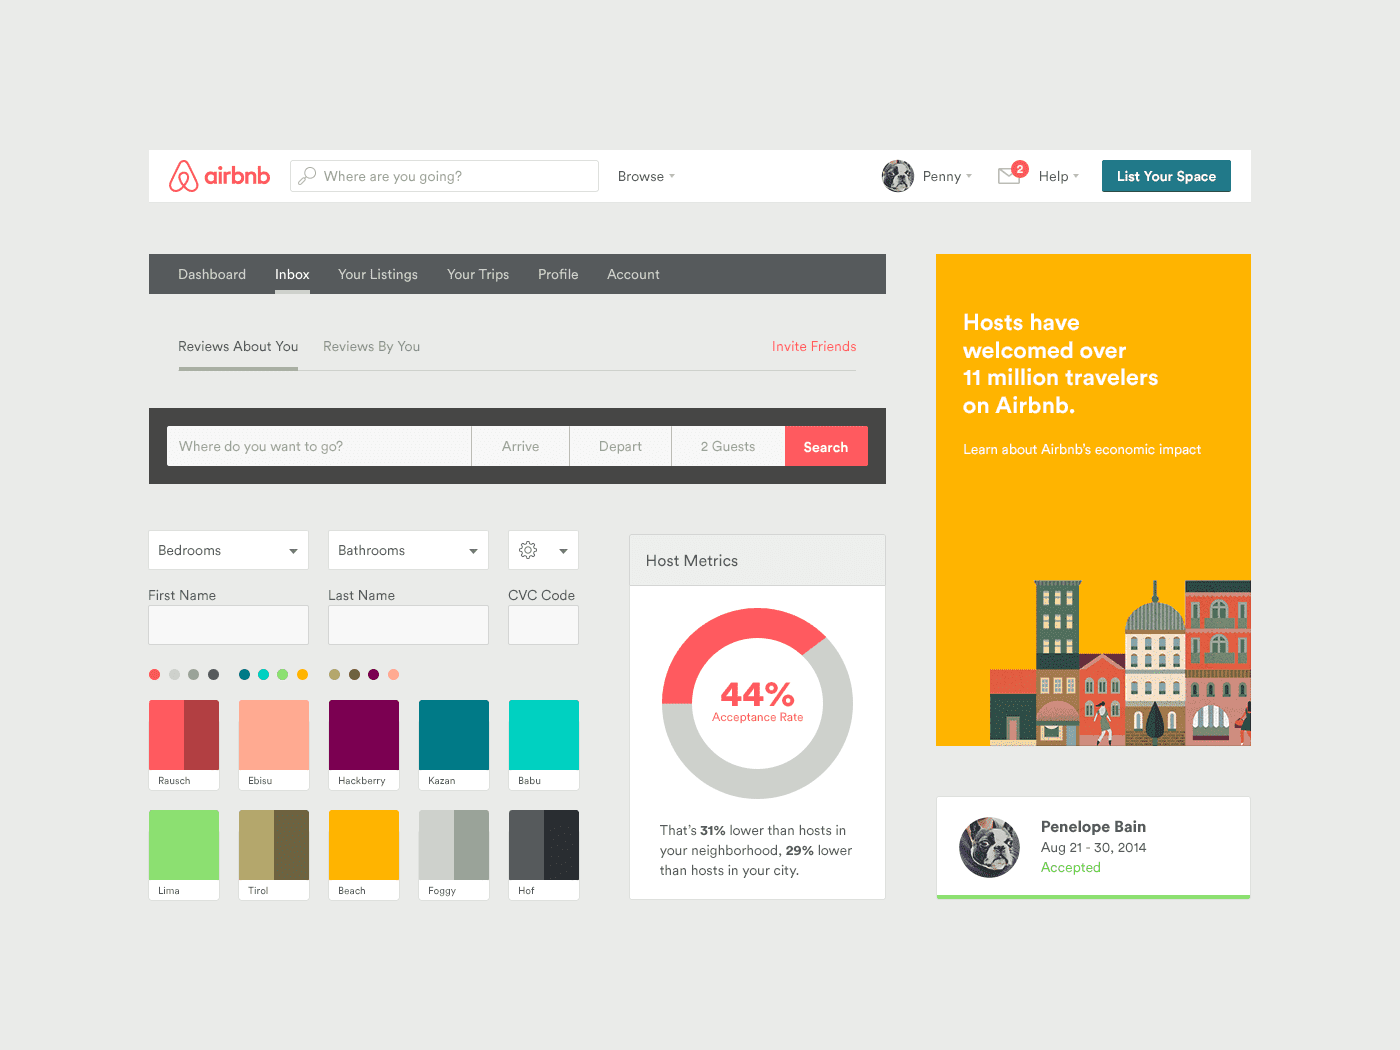 airbnb-web-toolkit